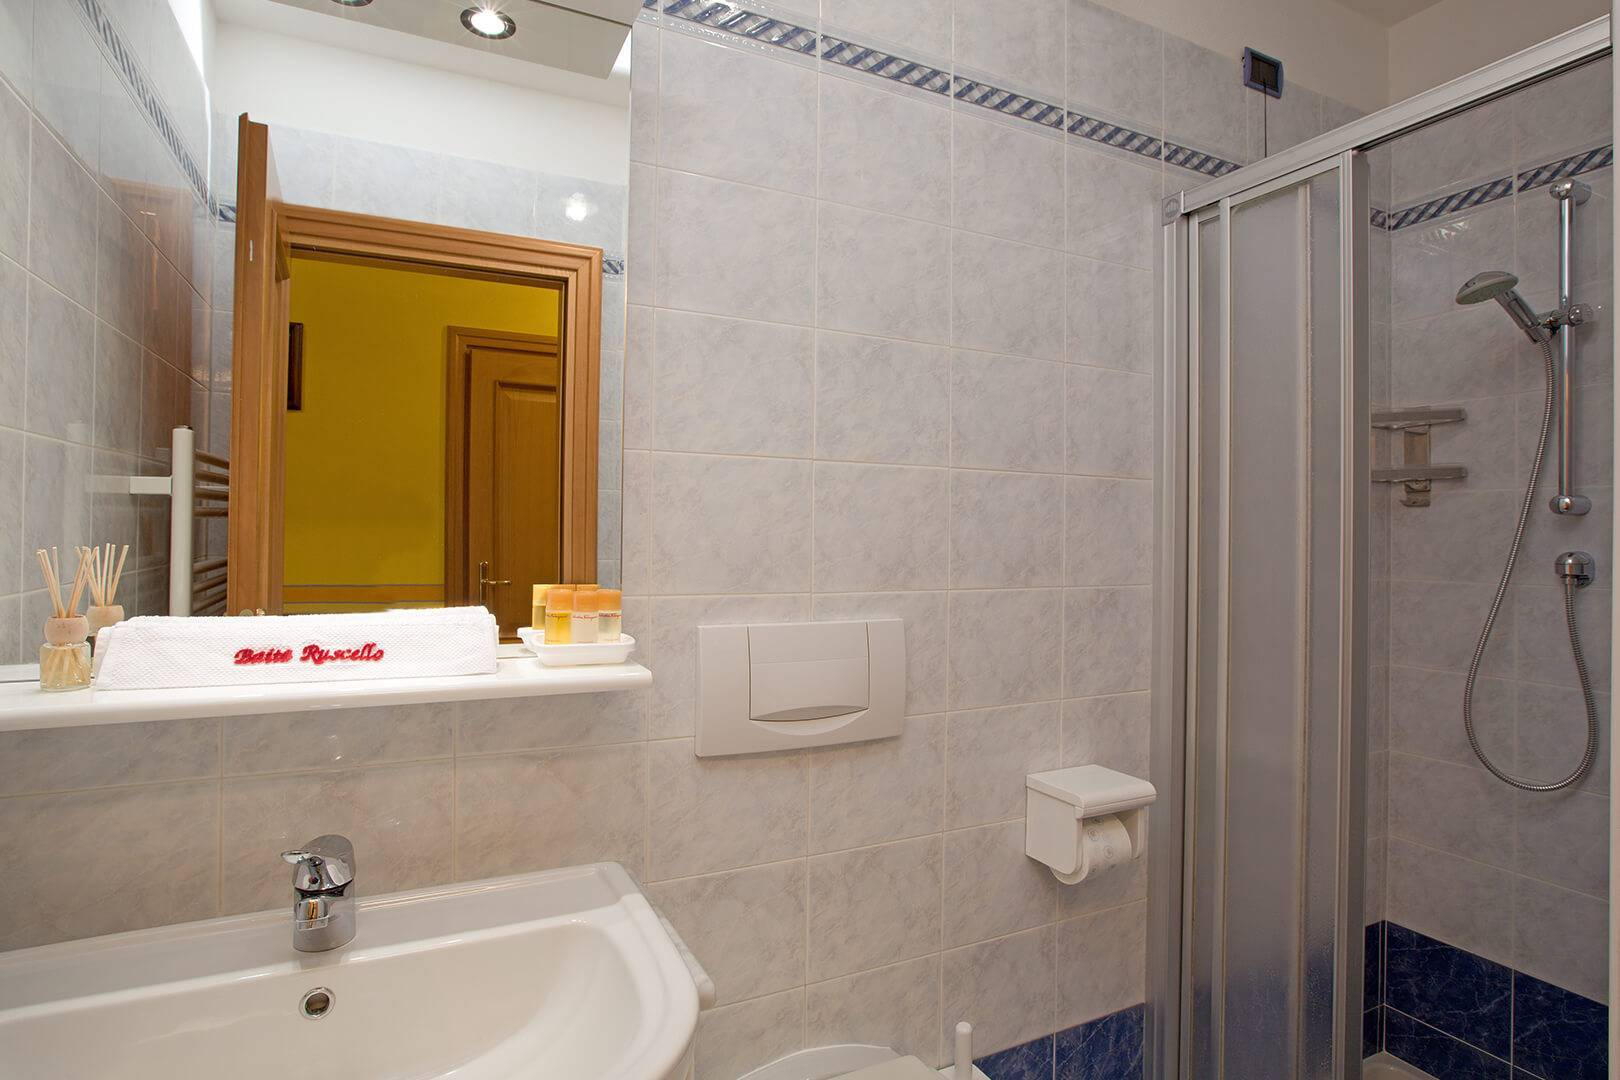 The Giallo Apartment is equipped with a large bathroom with shower